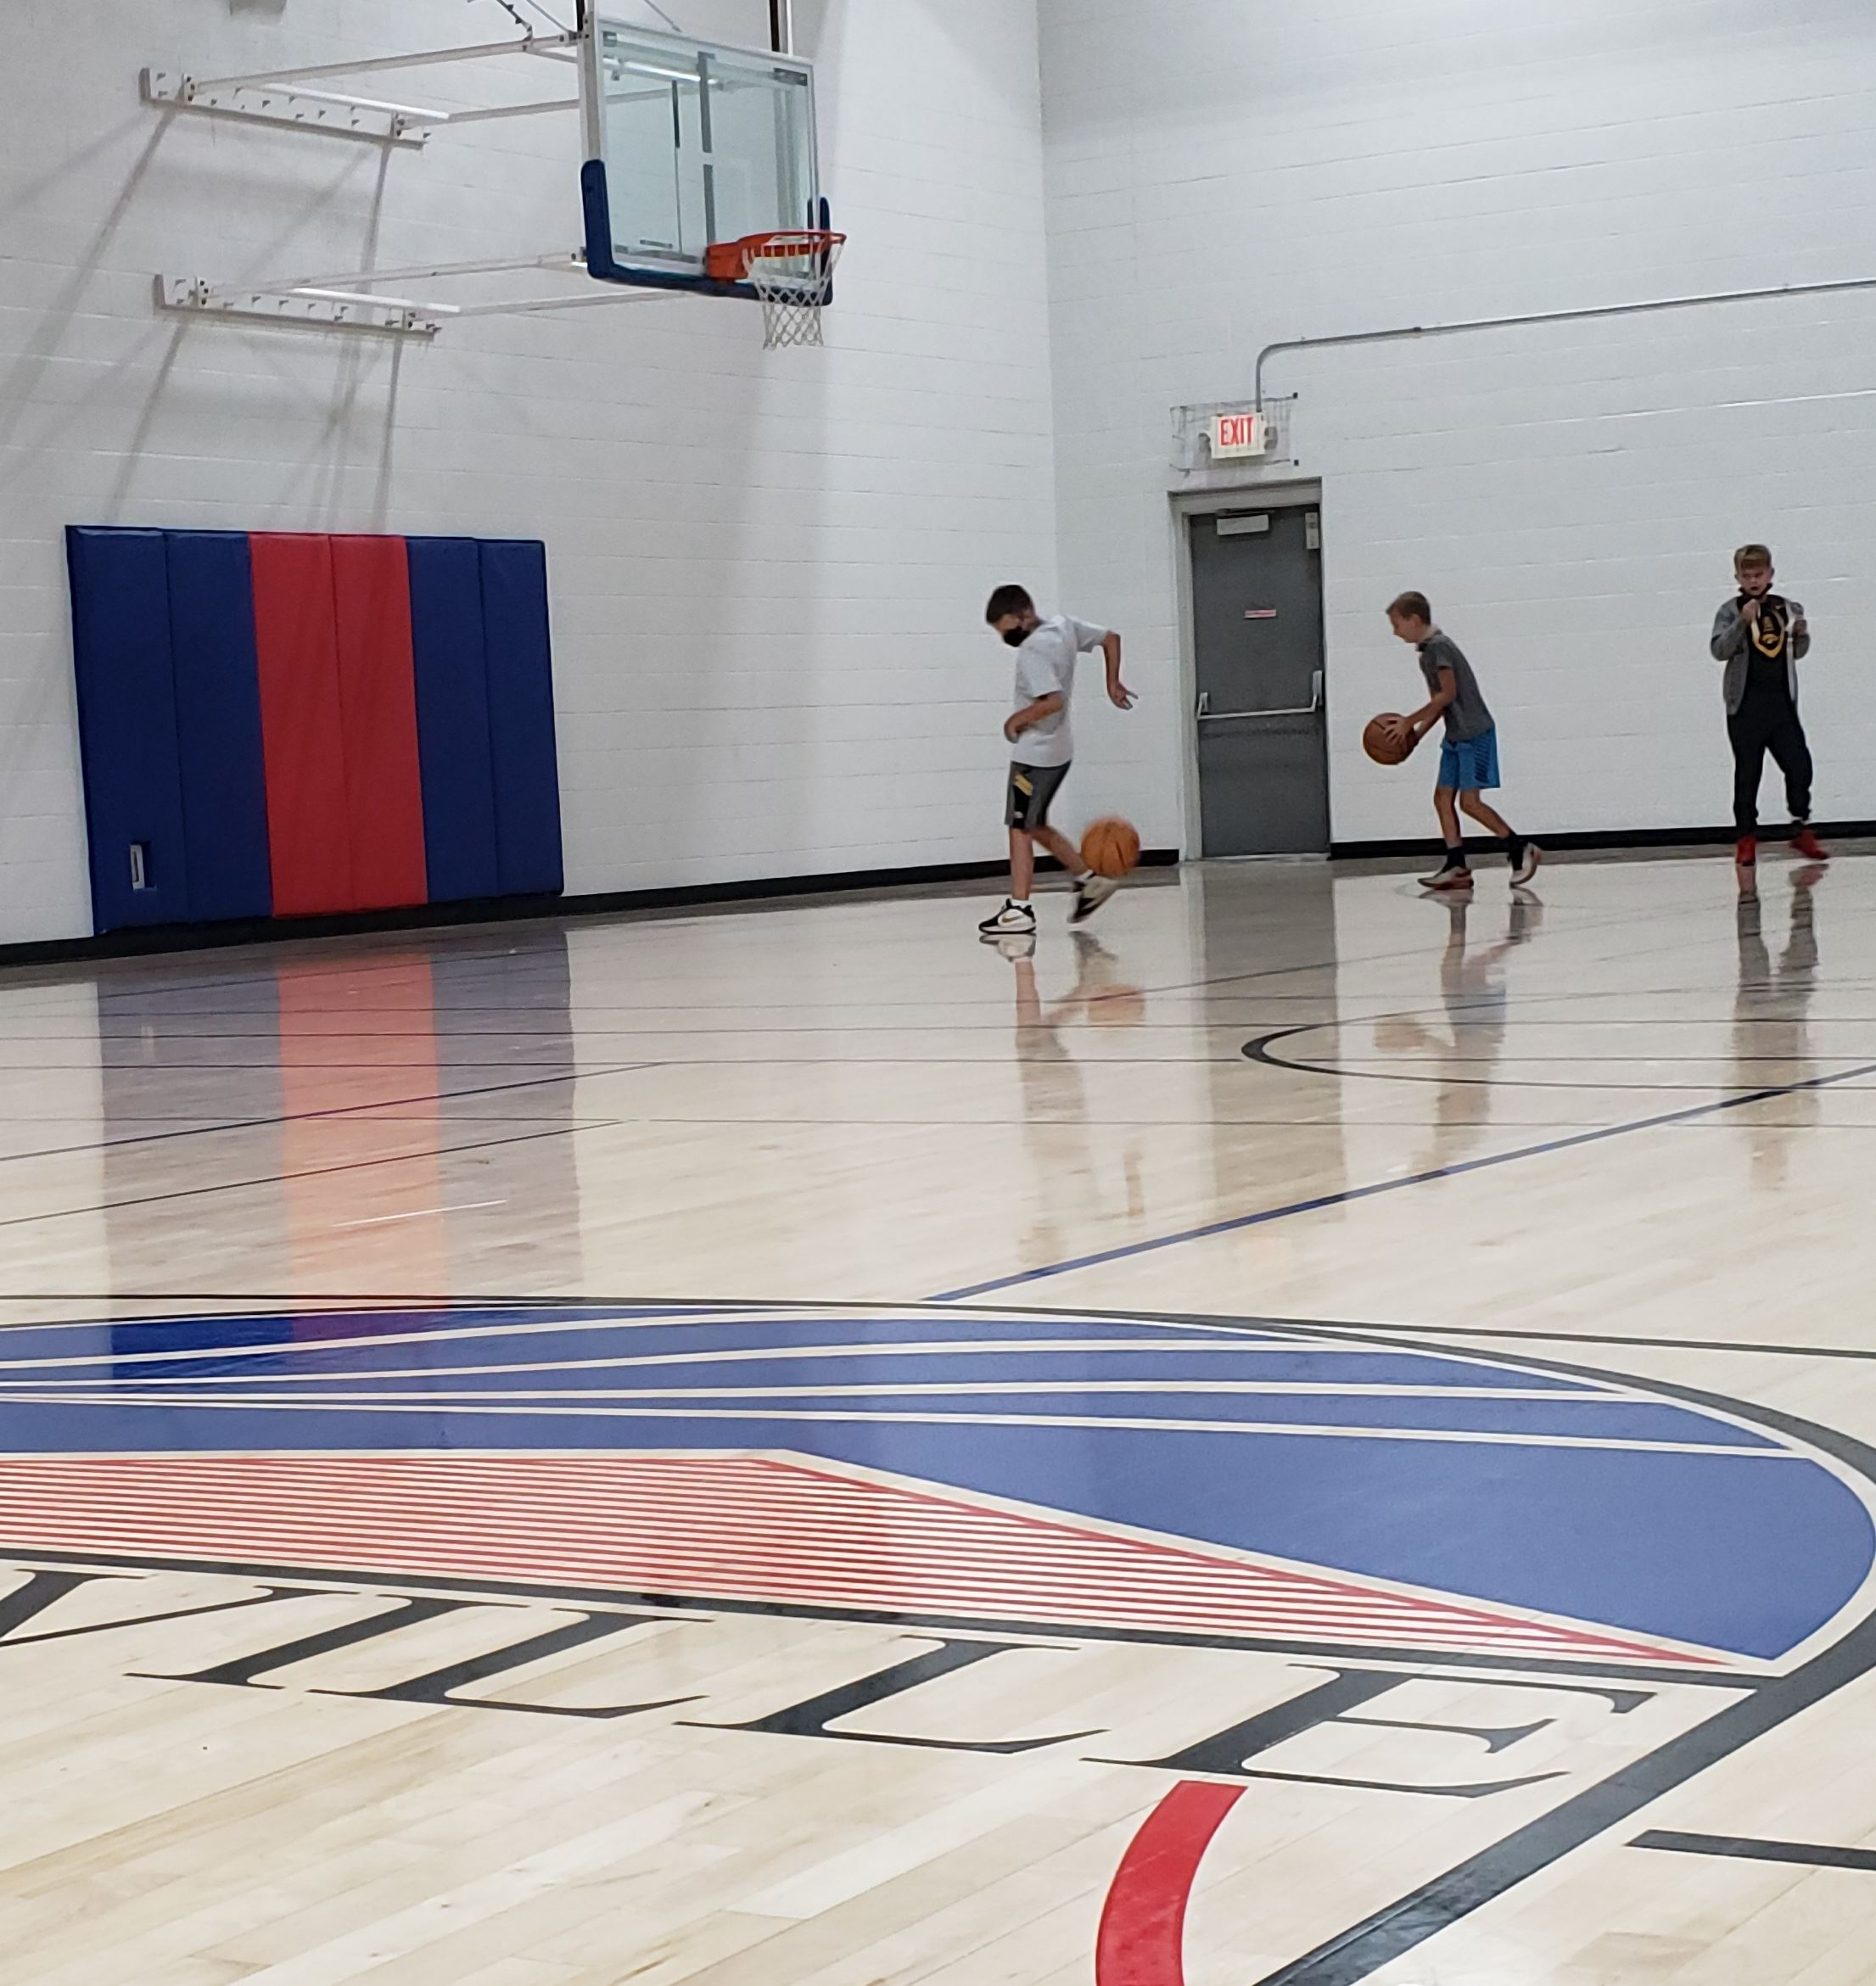 gym floor and kids in masks